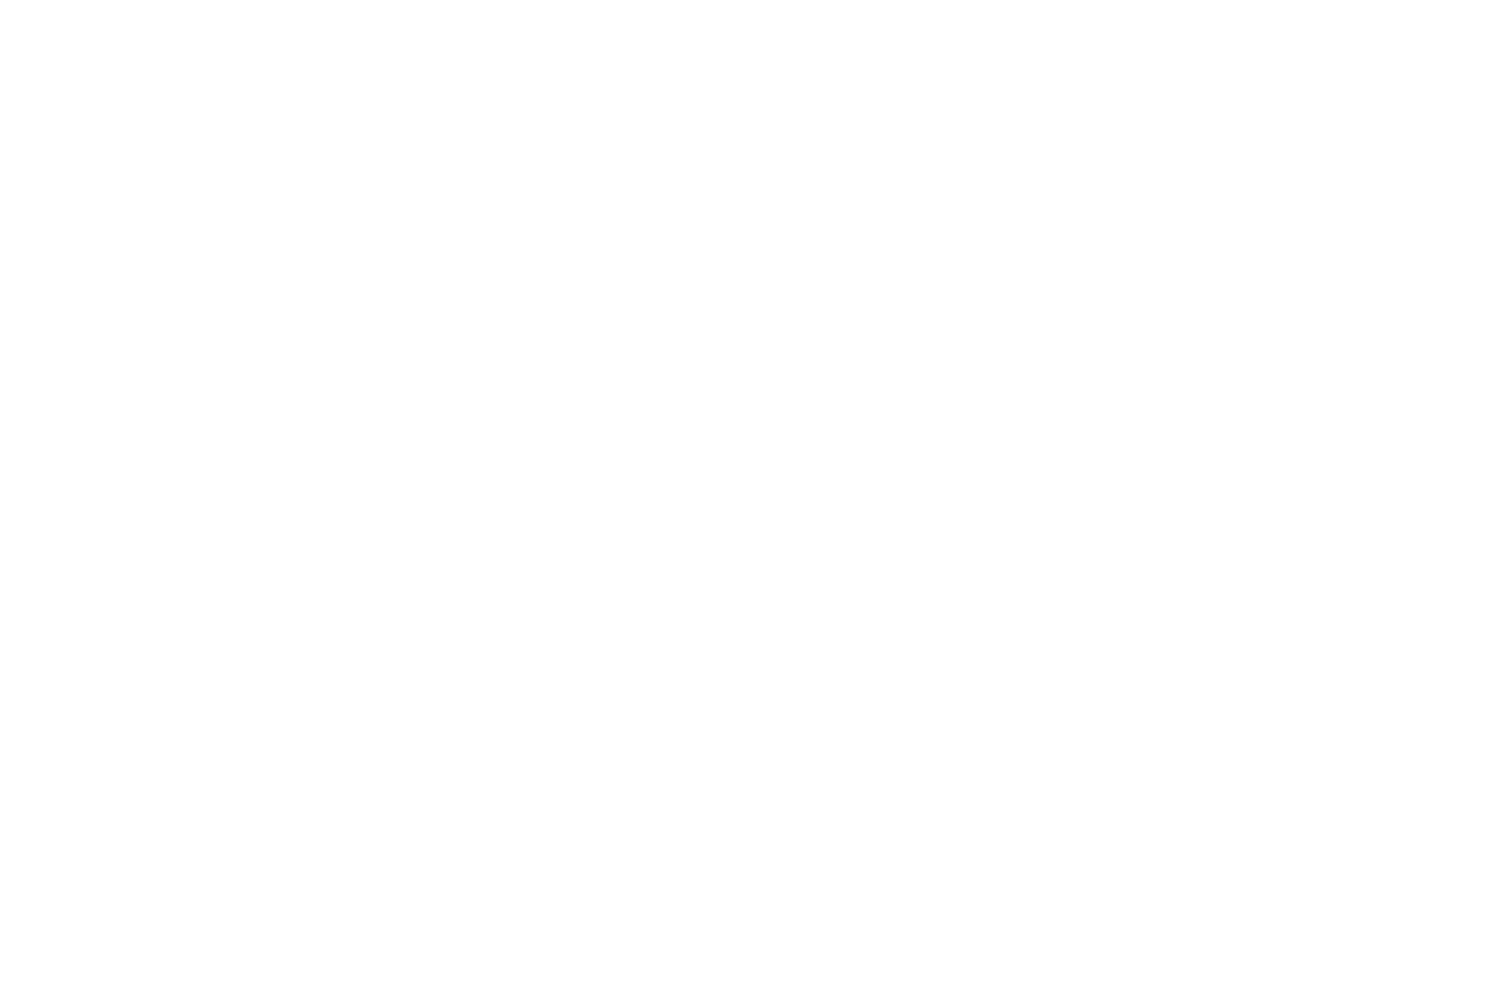 Kind Bill Concentrates